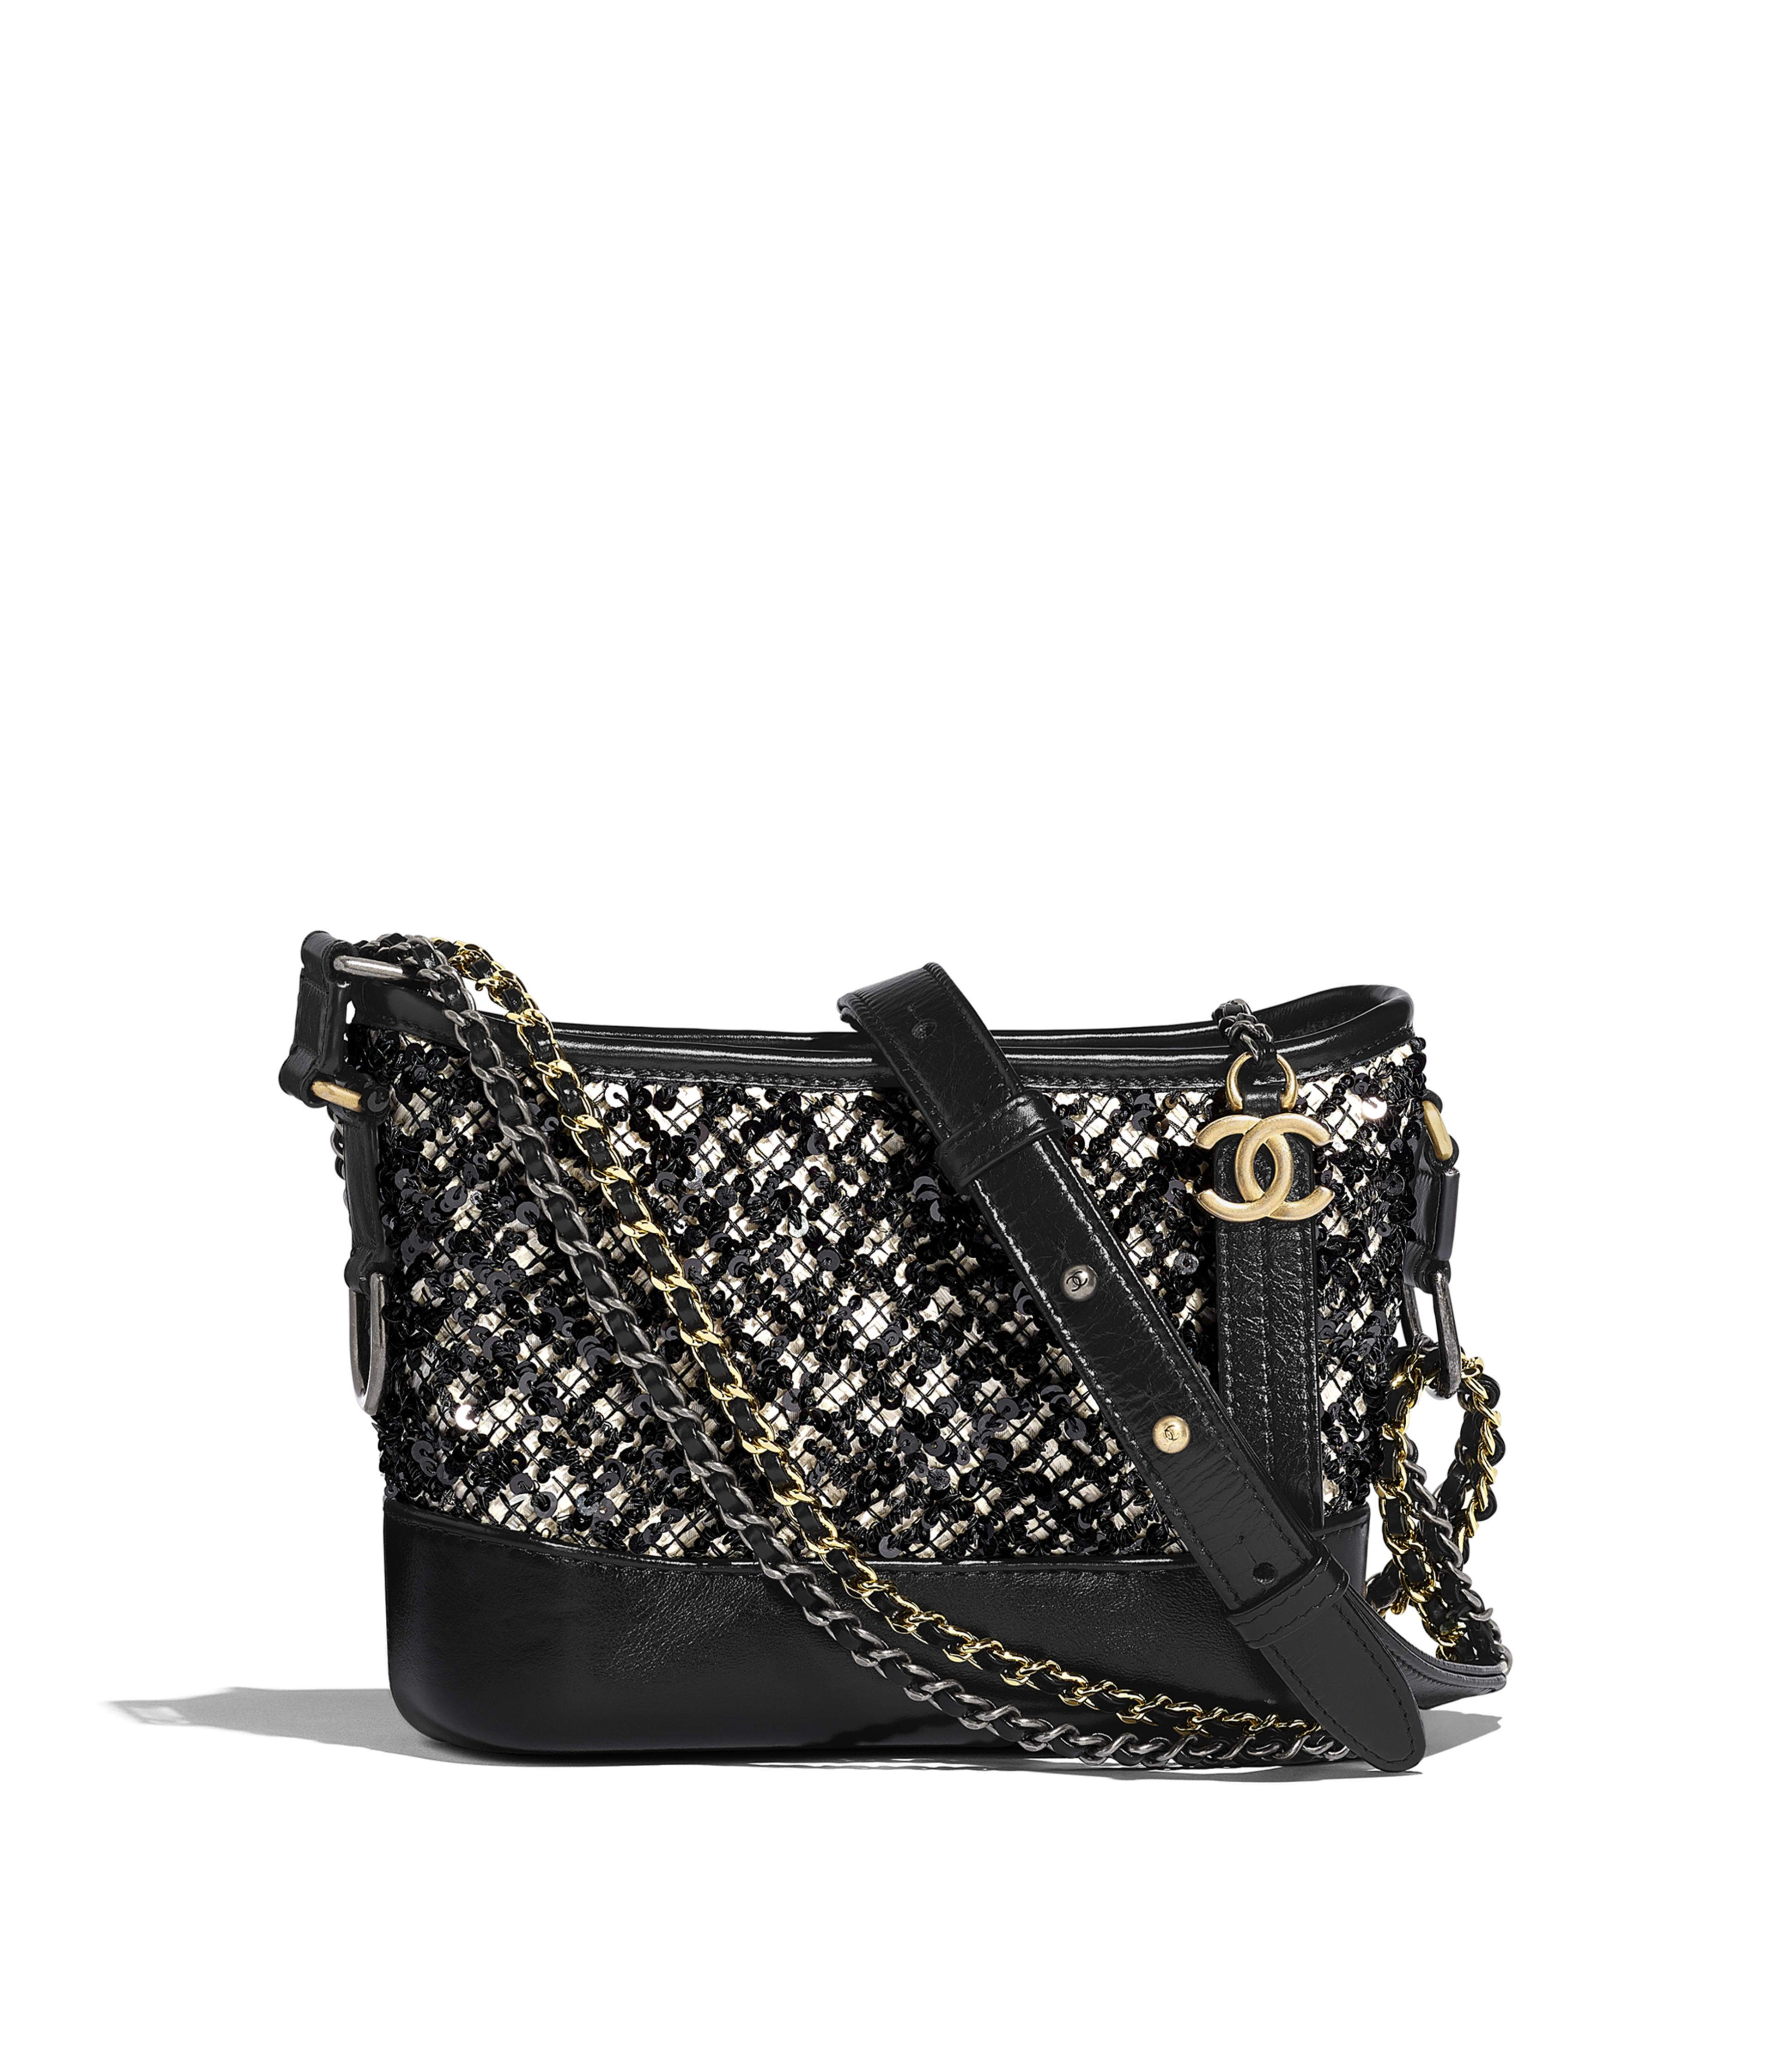 37f8458f80be CHANEL S GABRIELLE Small Hobo Bag Sequins